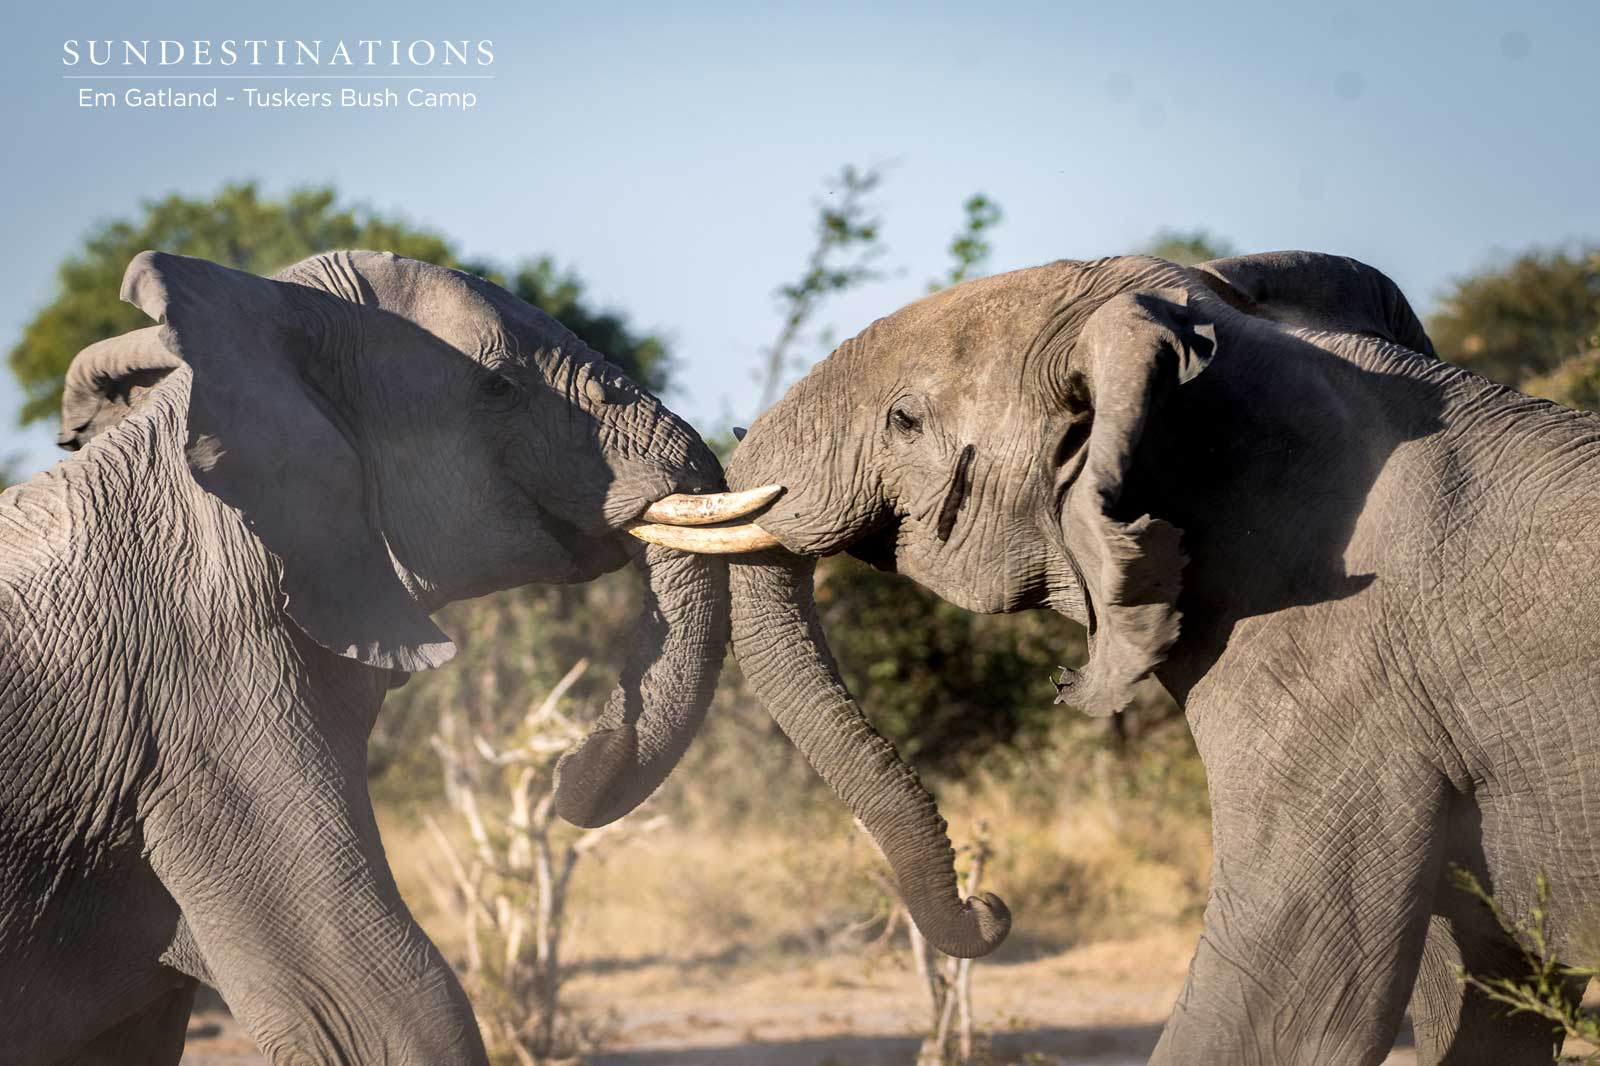 Elephants at Tuskers Bush Camp in Kwatale